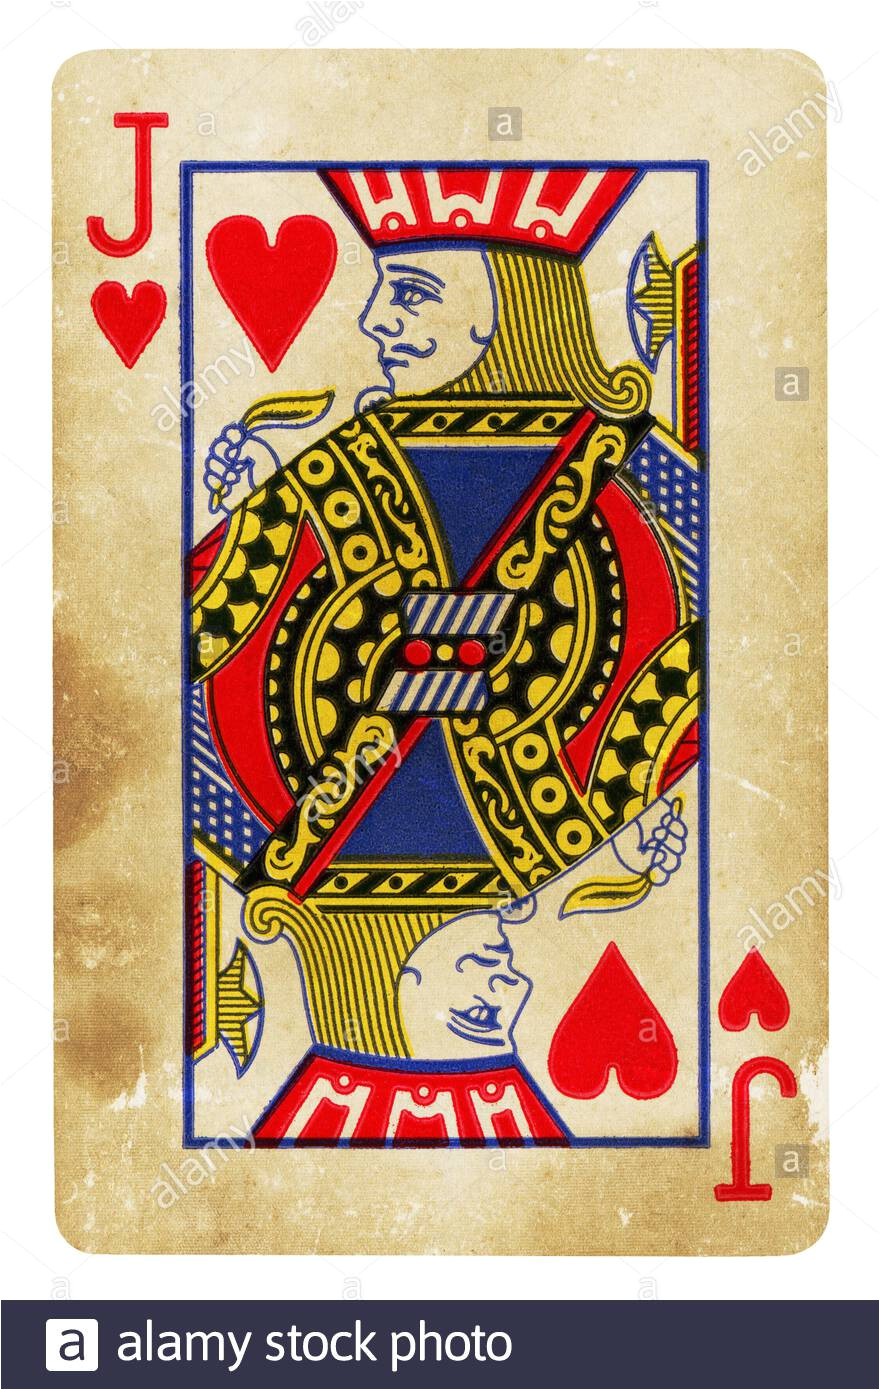 jack of hearts vintage playing card isolated on white clipping path included 2b6k33w jpg